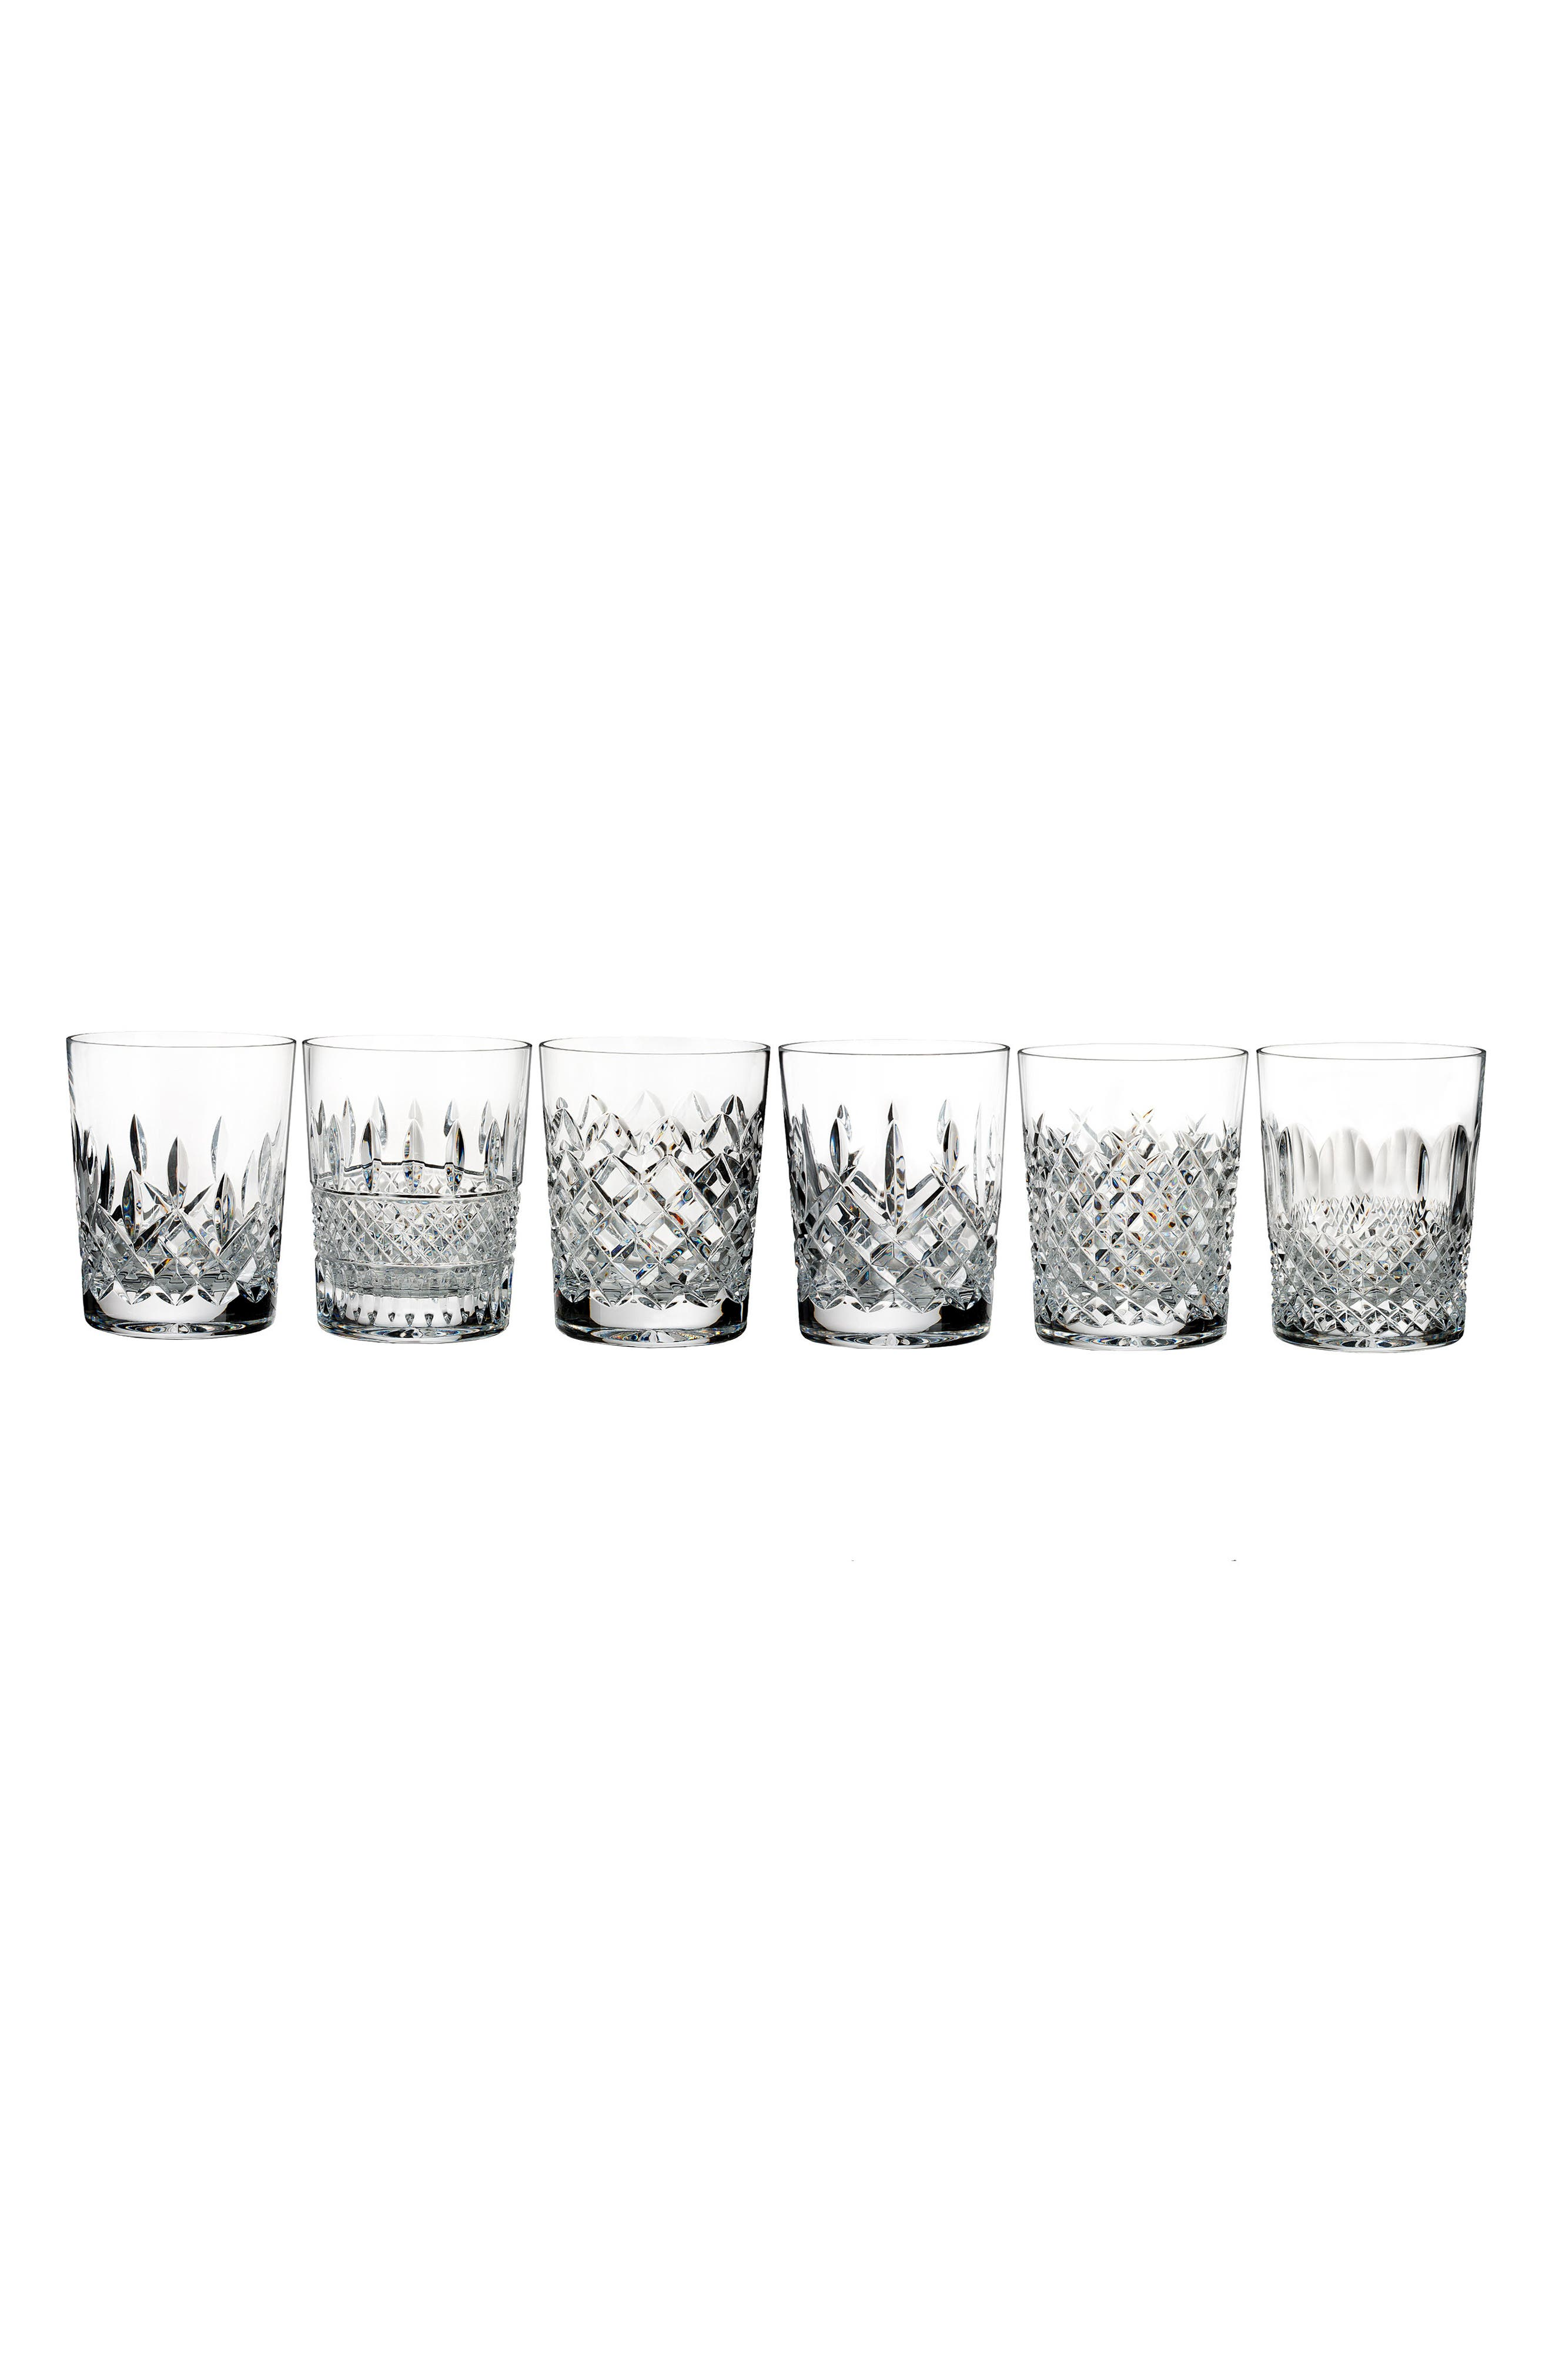 Connoisseur Set of 6 Lead Crystal Double Old Fashioned Glasses,                             Main thumbnail 1, color,                             100